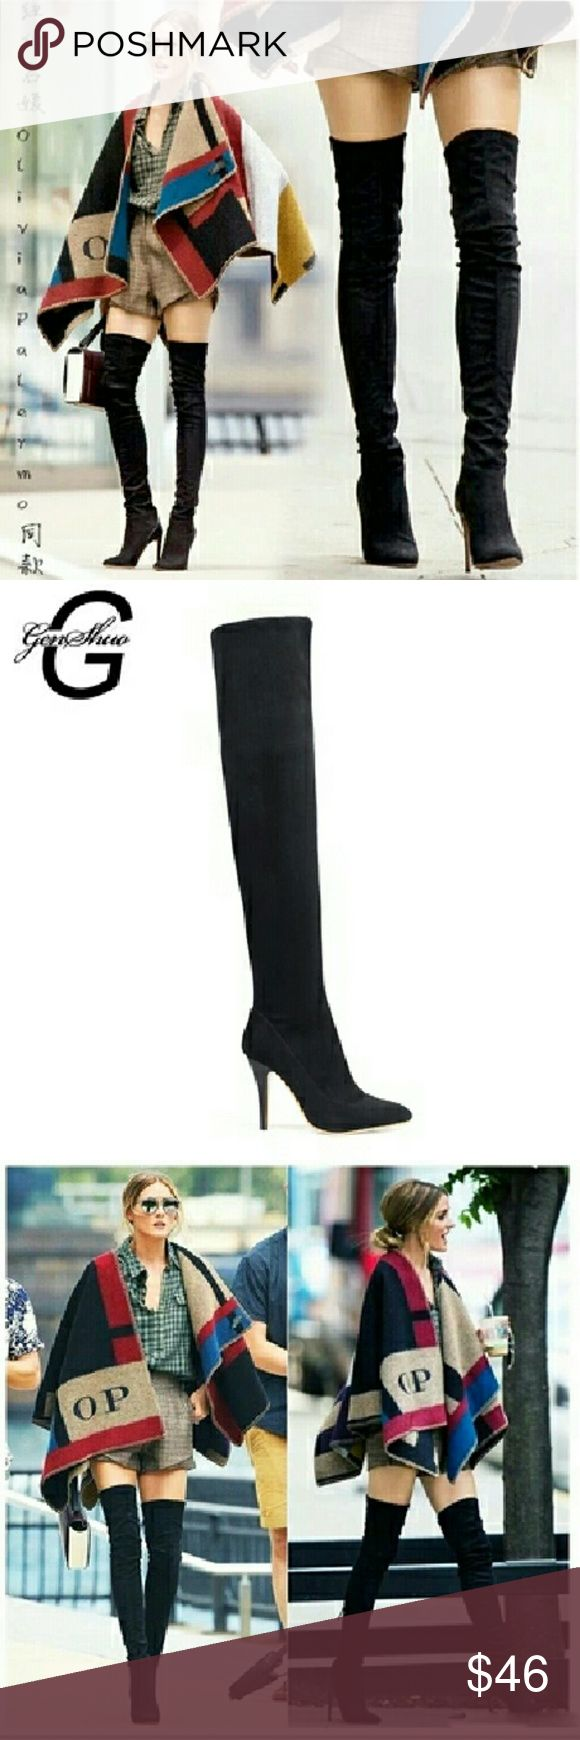 Suede Stilleto GENSHUO Woman Black Suede Over The Knee Boots Winter Warm Boots Women Sexy Stiletto Slim Fit Stretch Booties Botas Mujer Shoes Over the Knee Boots